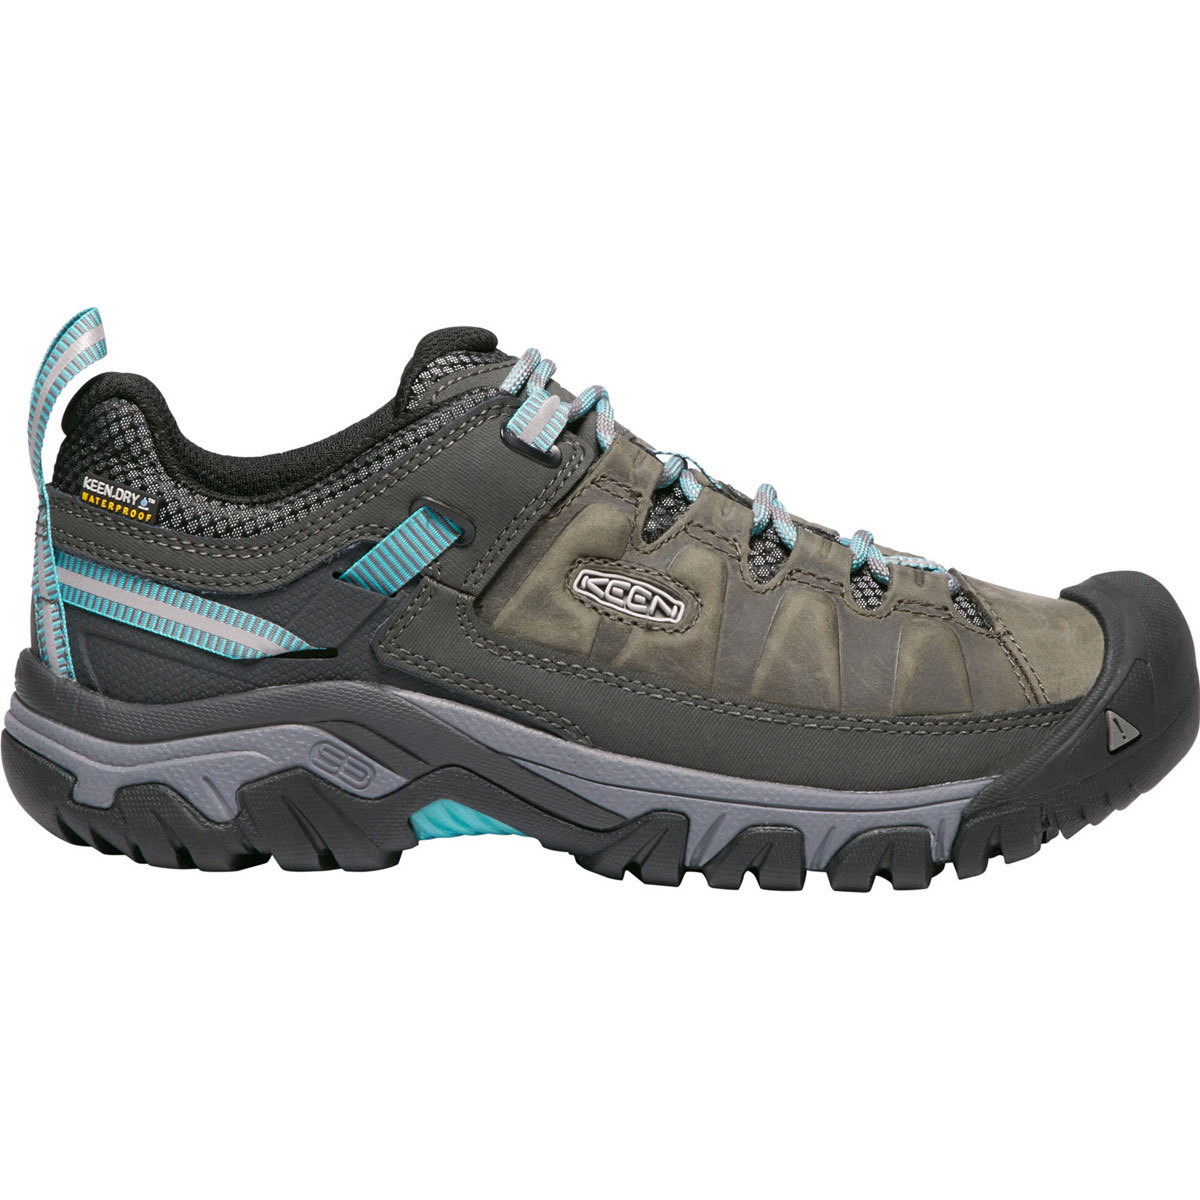 Keen Women's Targhee Iii Waterproof Low Hiking Shoes - Black, 9